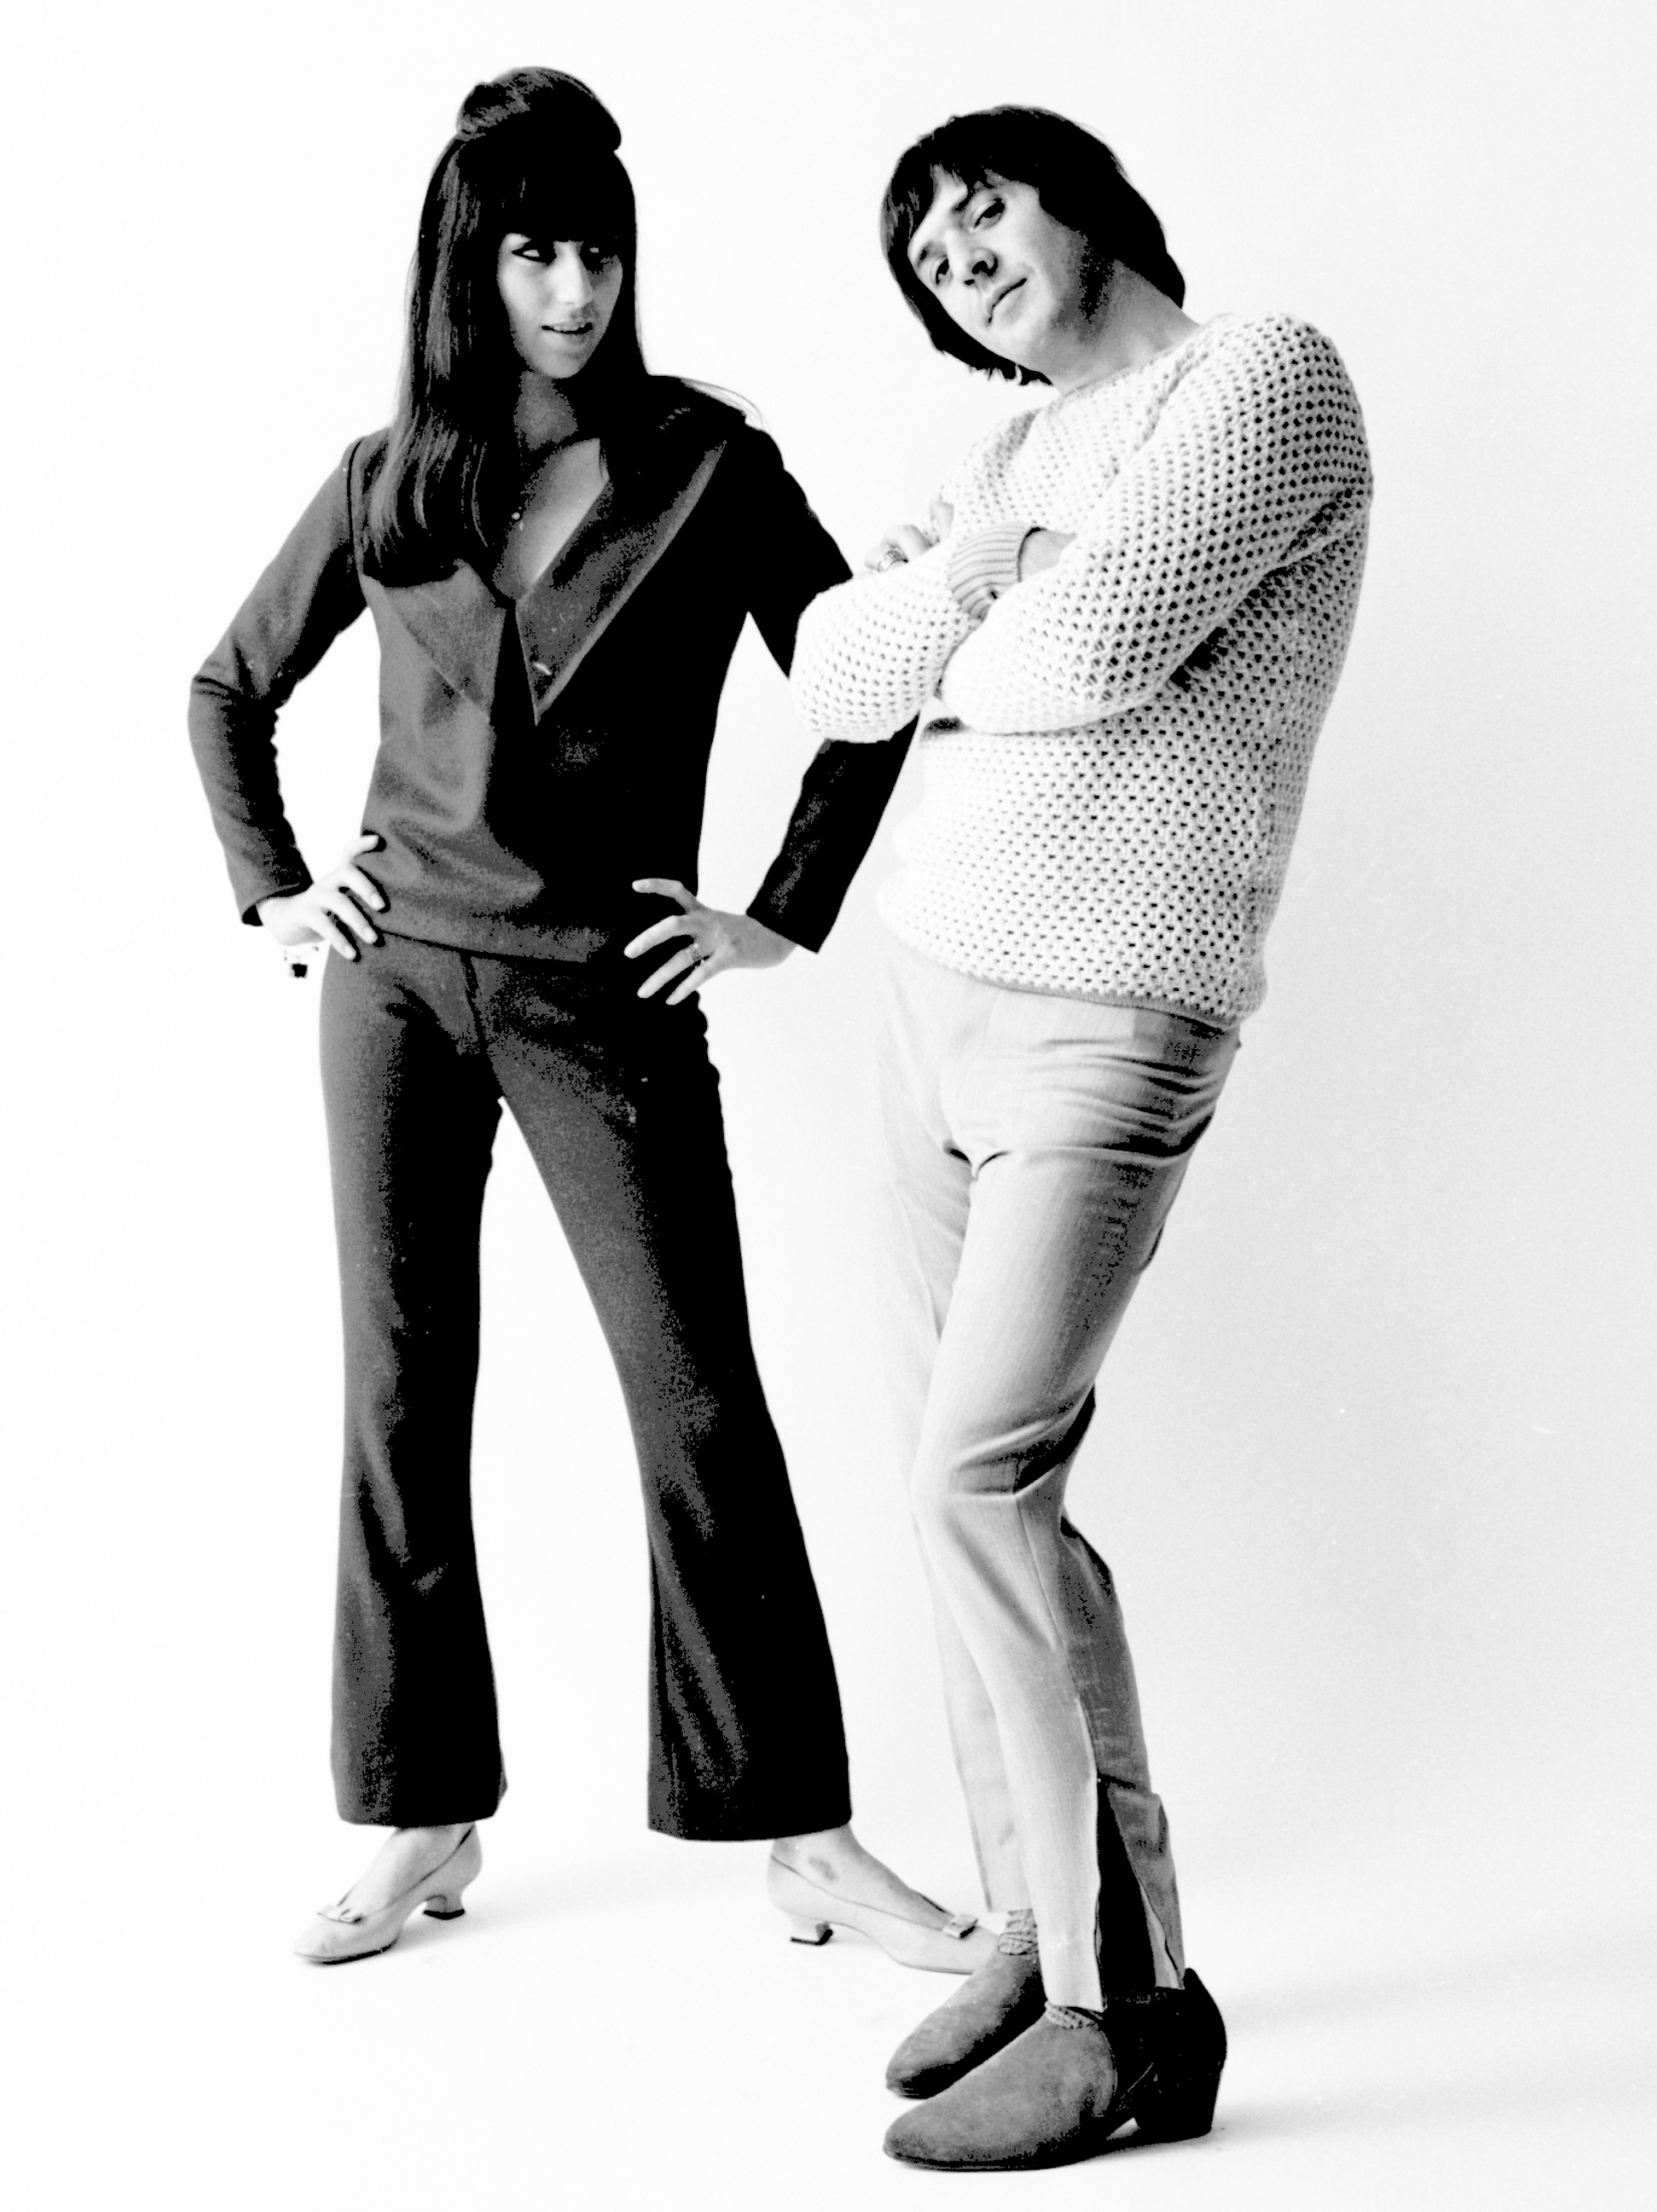 Cher Through The Years - After going through some hurdles in their relationship, Cher and Sonny put their differences aside and married. (They previously had an unofficial wedding in October 1964.)